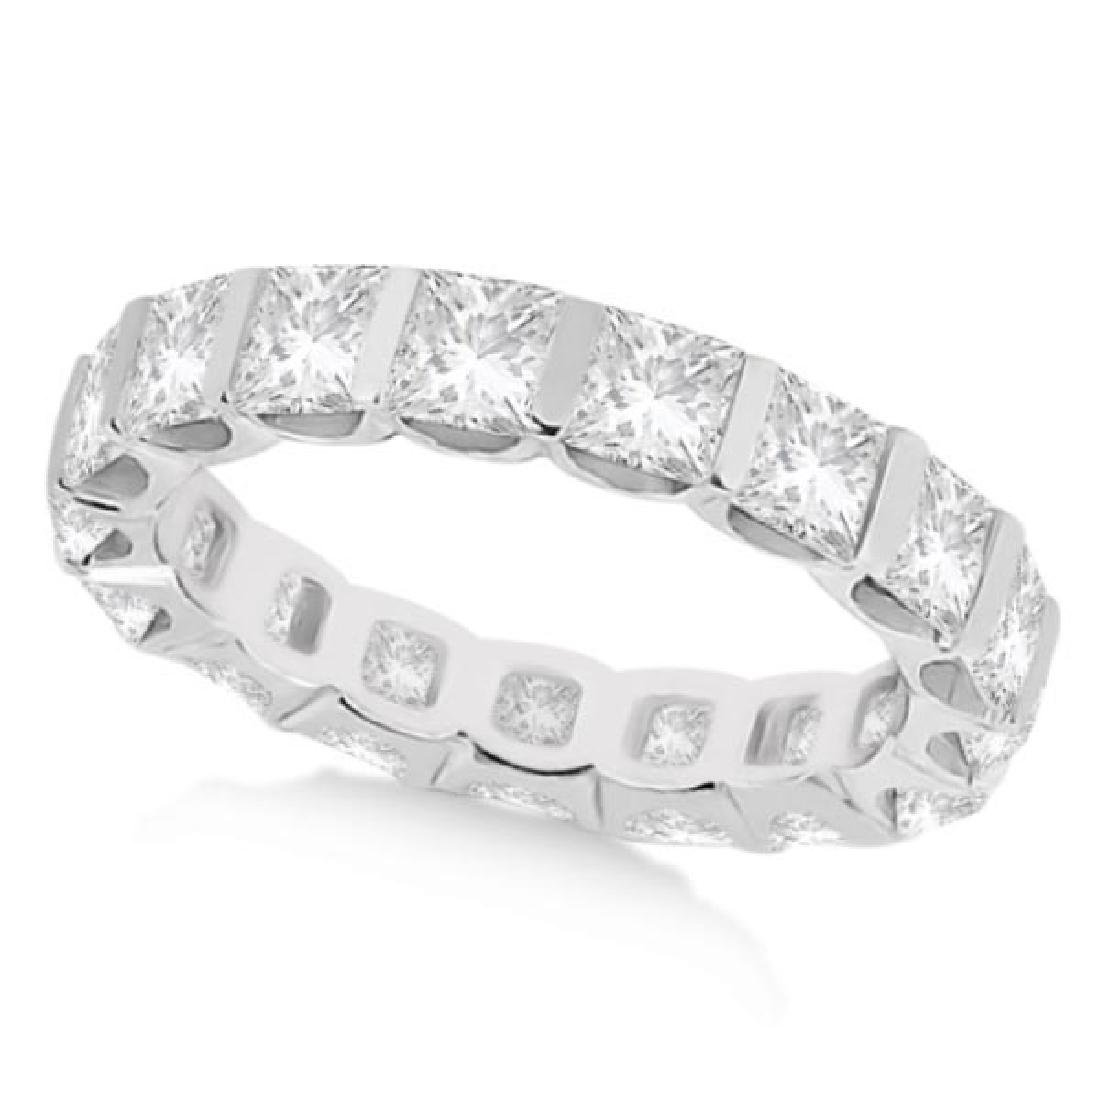 Bar-Set Princess Cut Diamond Eternity Ring Band 14k Whi